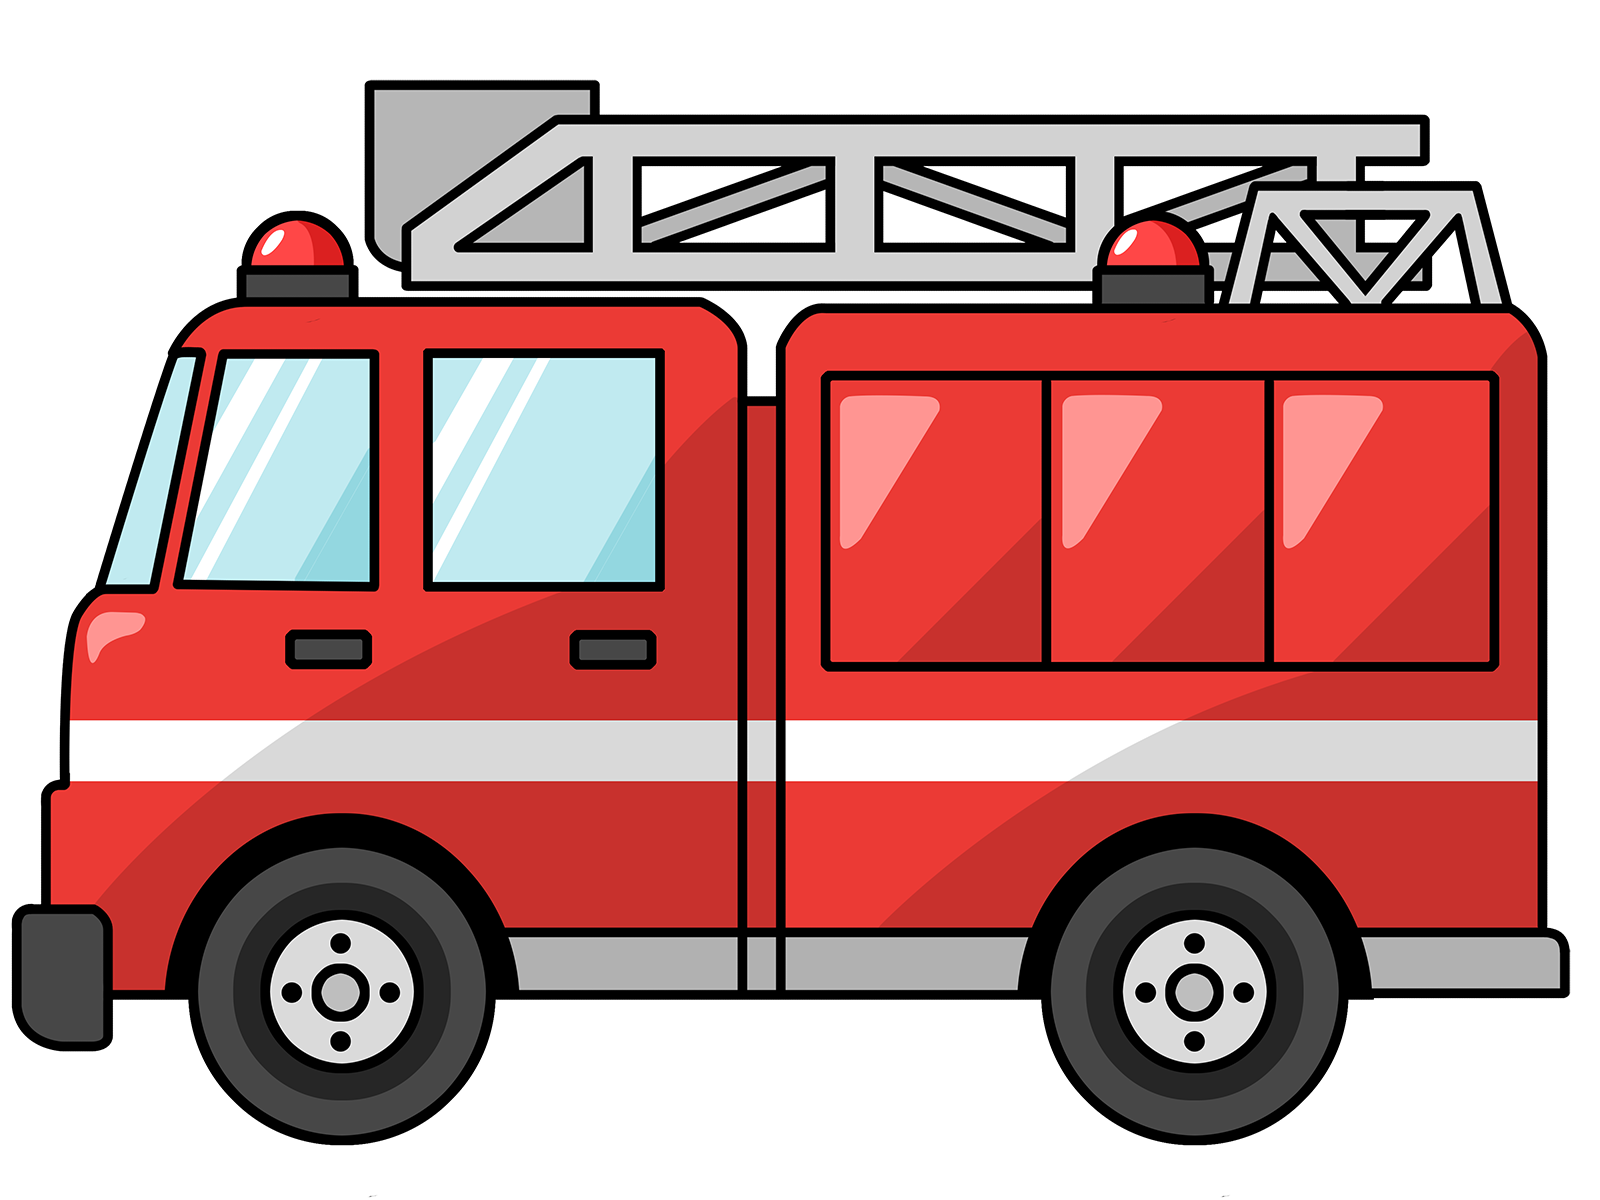 fire truck clipart google search education by anna martin rh pinterest com free clipart and fire truck clipart fire truck vector free download